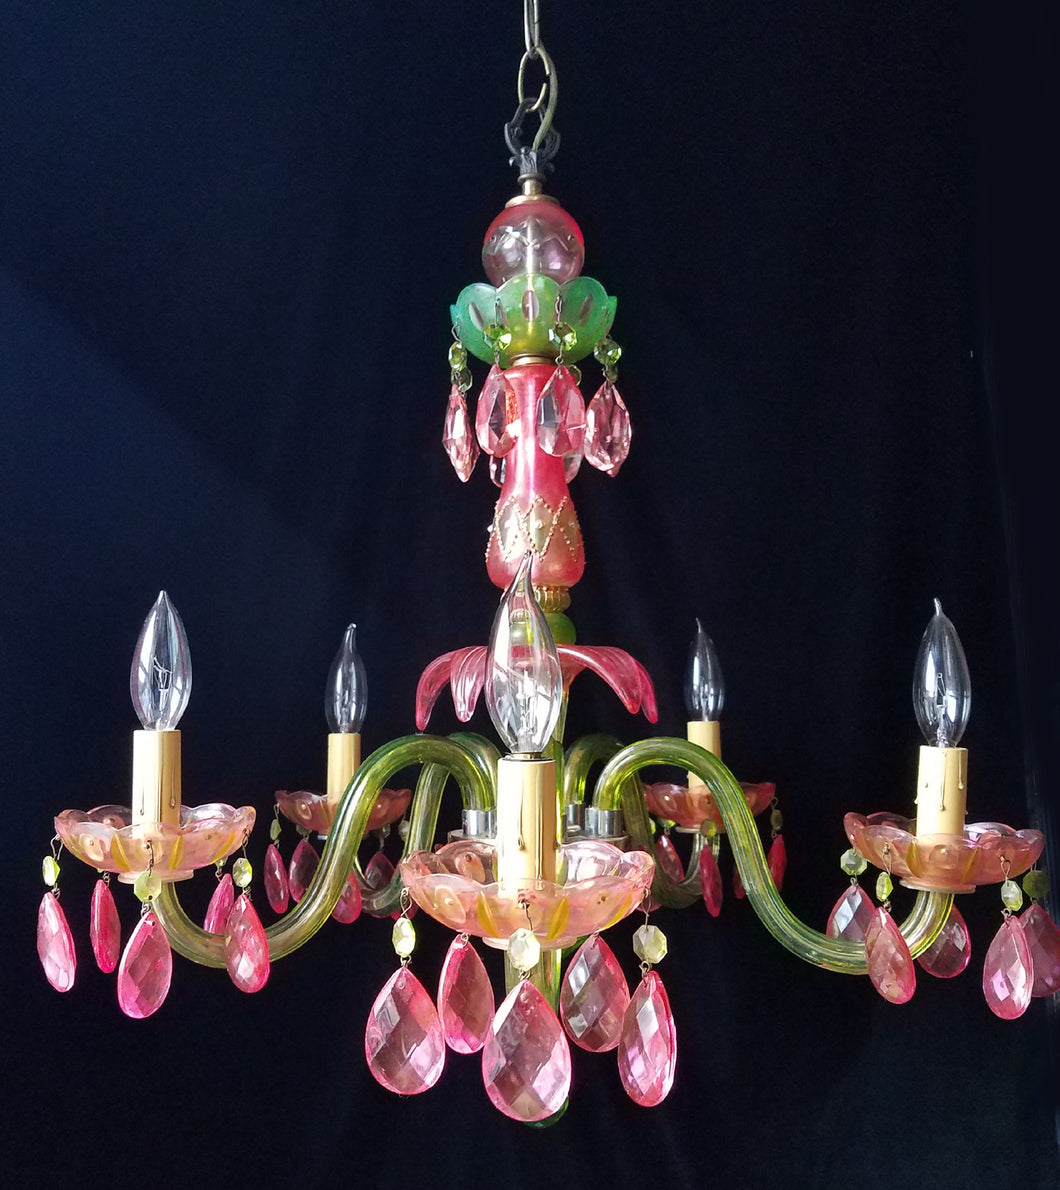 Crystal Chandelier Lighting, Pink and Green Jeweled, One of a Kind, 24